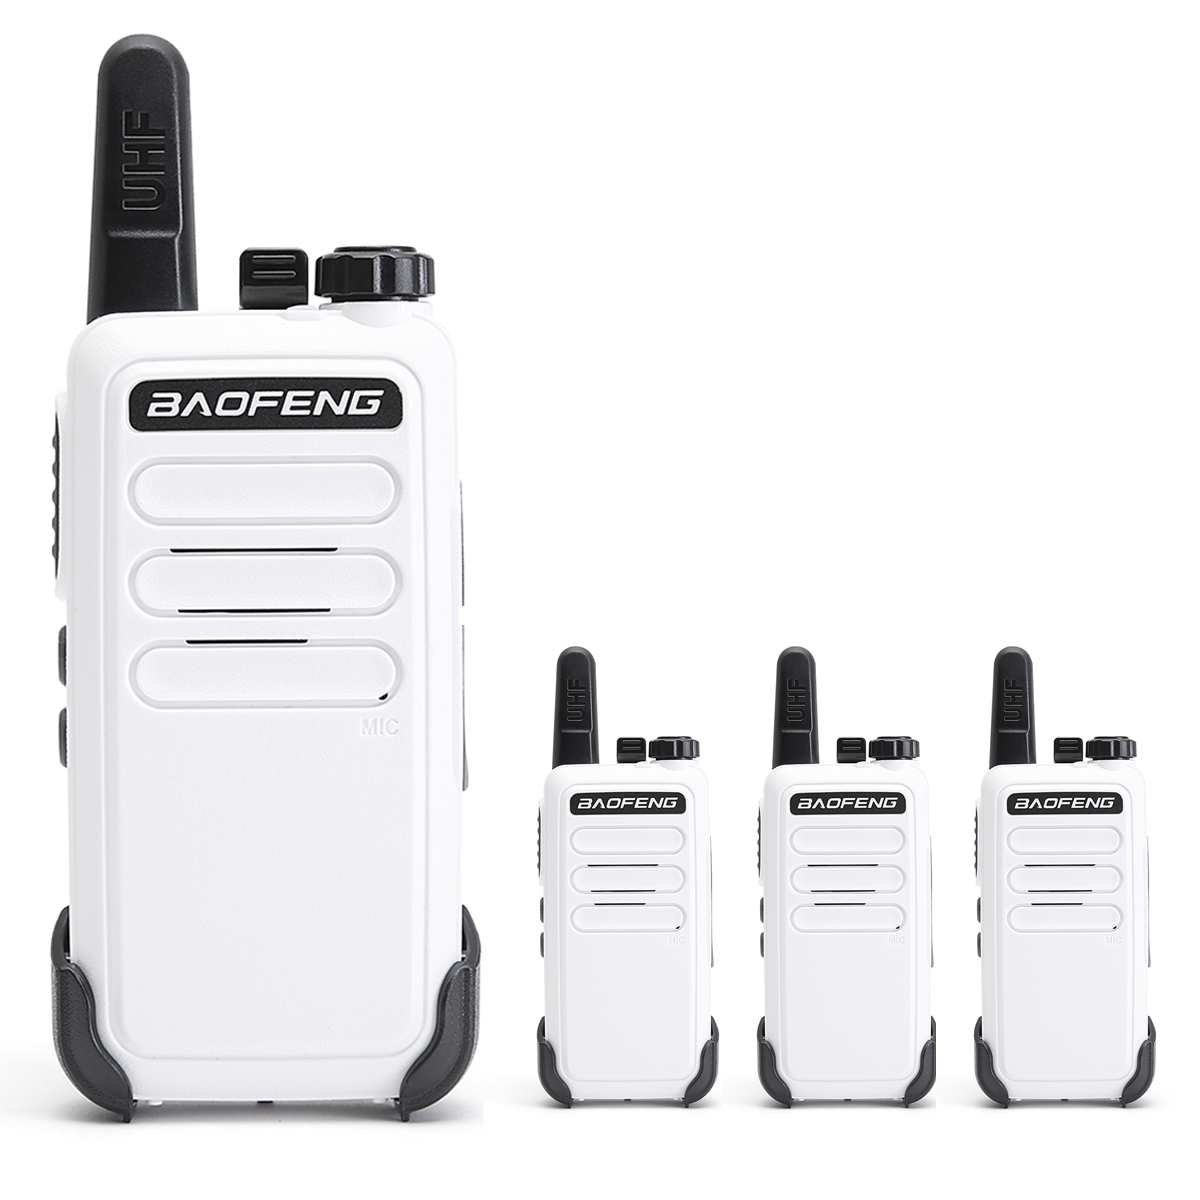 Baofeng Transceiver Walkie-Talkie VOX Handheld Two-Way-Radio UHF Bf-888s Mini Portable